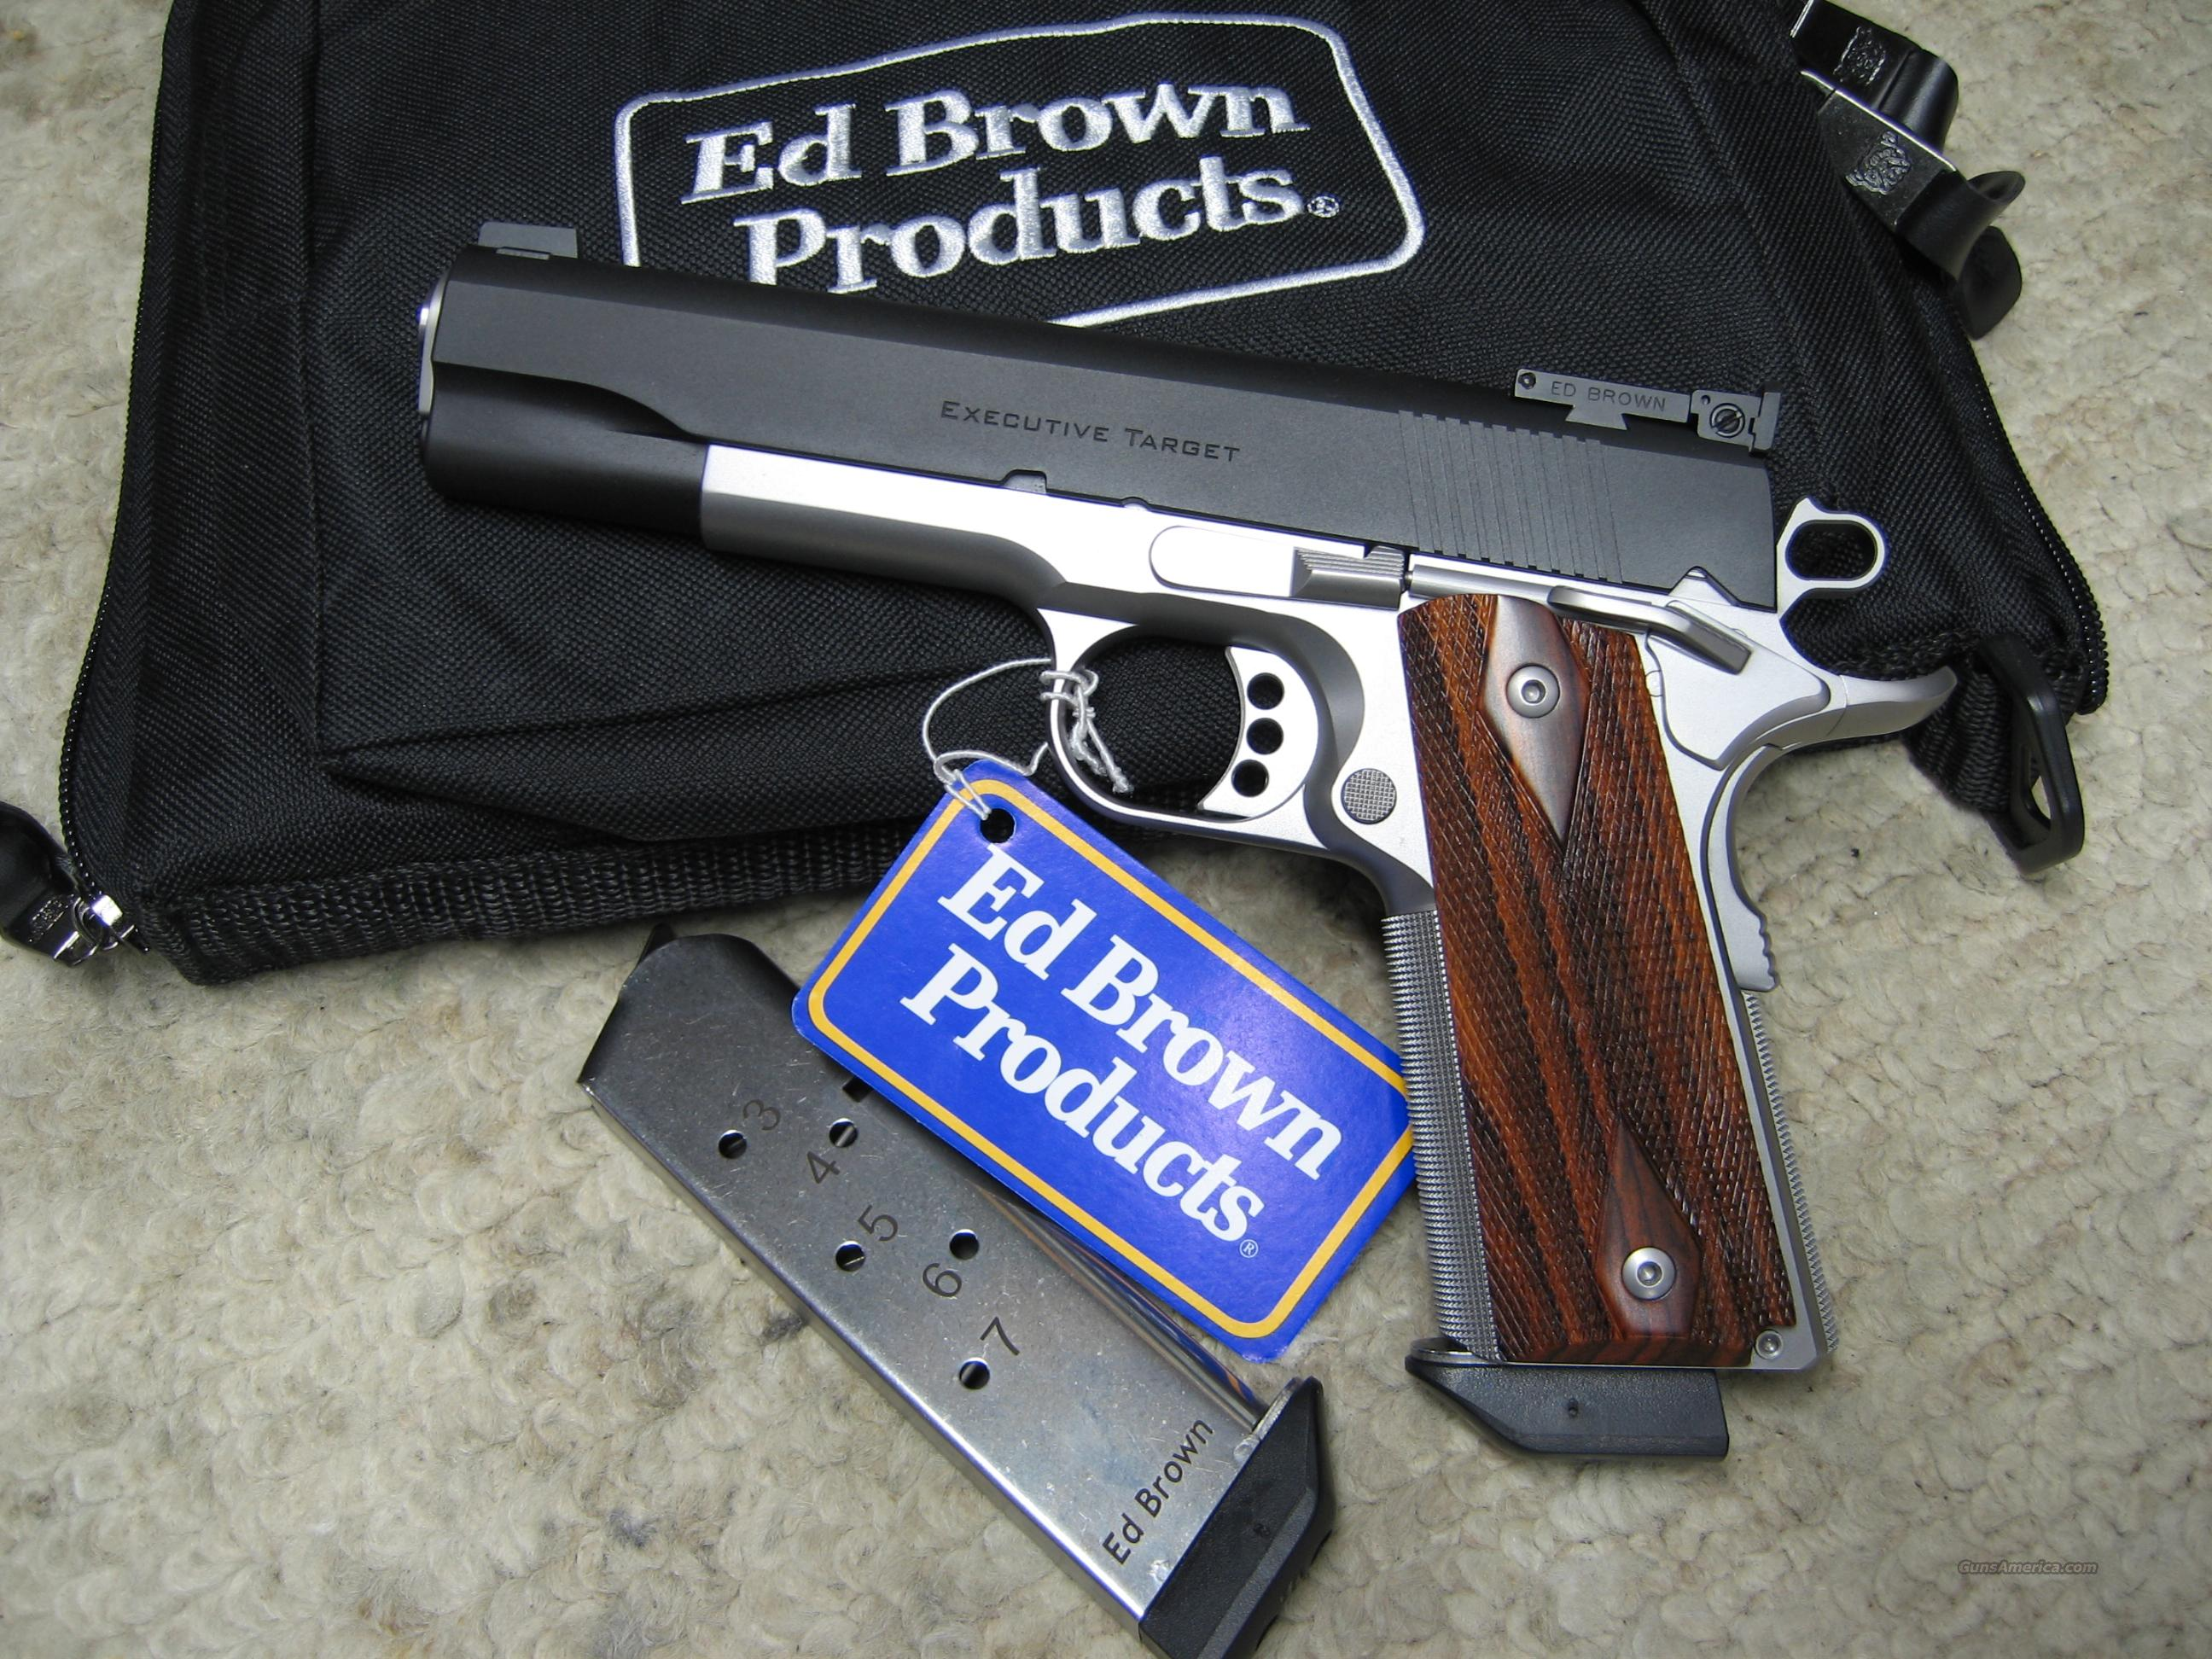 ED BROWN EXECUTIVE TARGET - TWO TONE  Guns > Pistols > Ed Brown Pistols